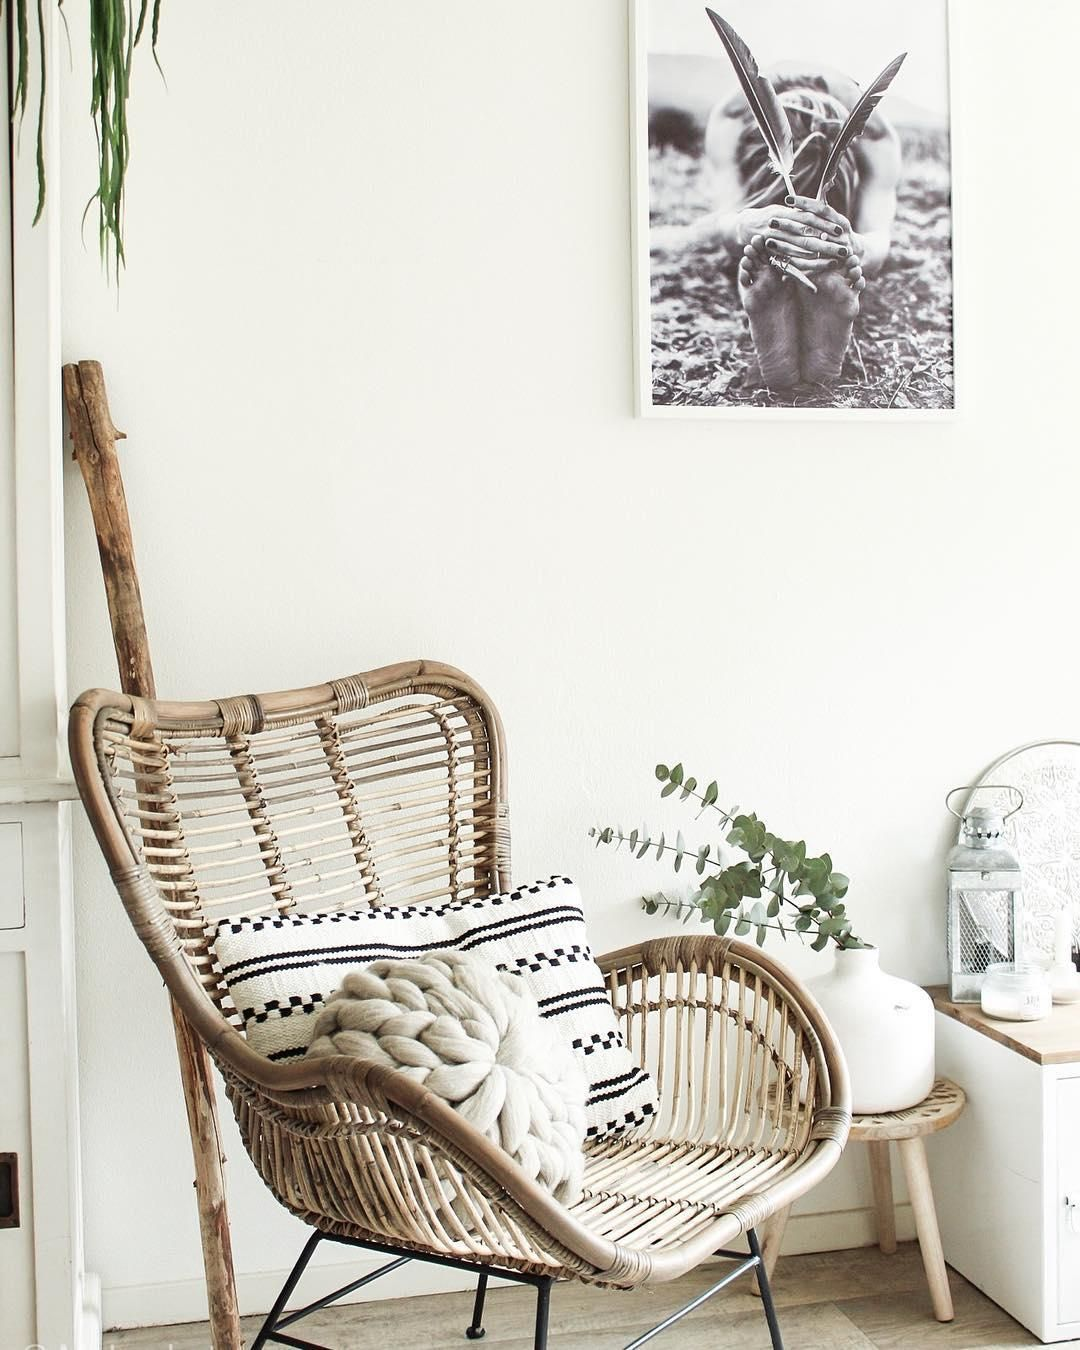 Rattansessel Dekorieren Rattan Sessel Egg In 2019 Rattan Armchair Chair